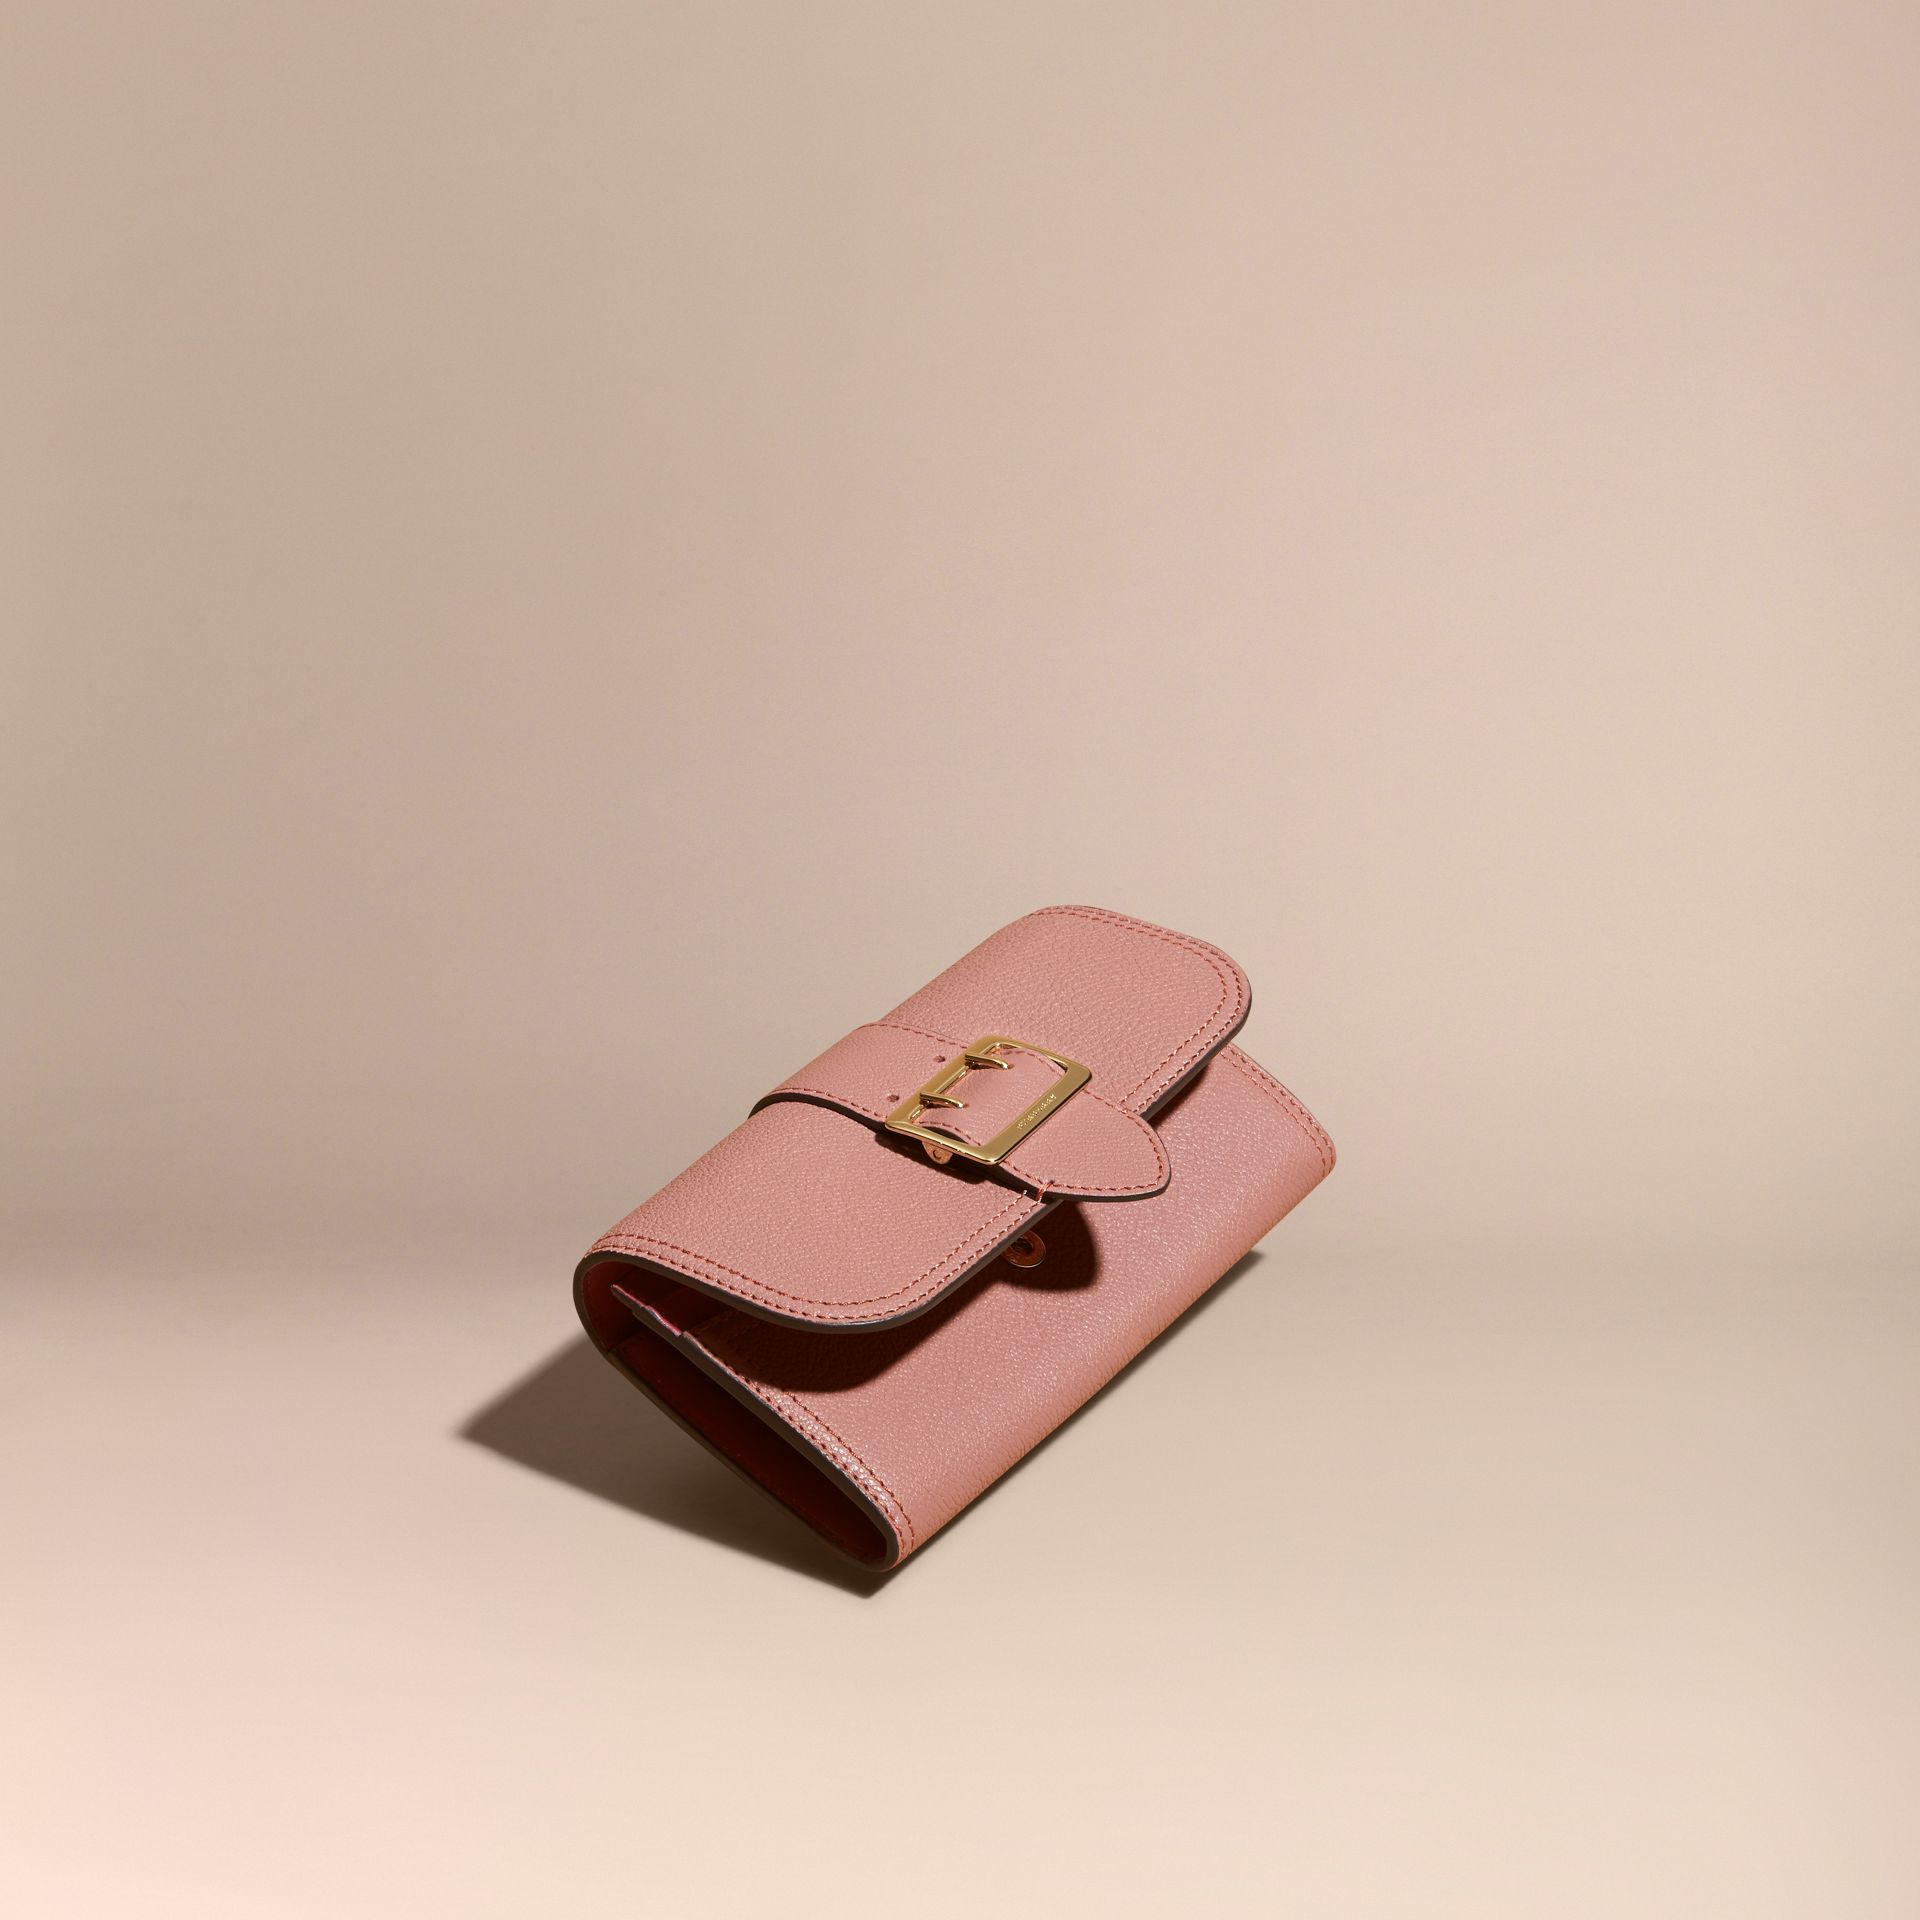 Textured Leather Continental Wallet in Dusty Pink - Women | Burberry Canada - gallery image 1